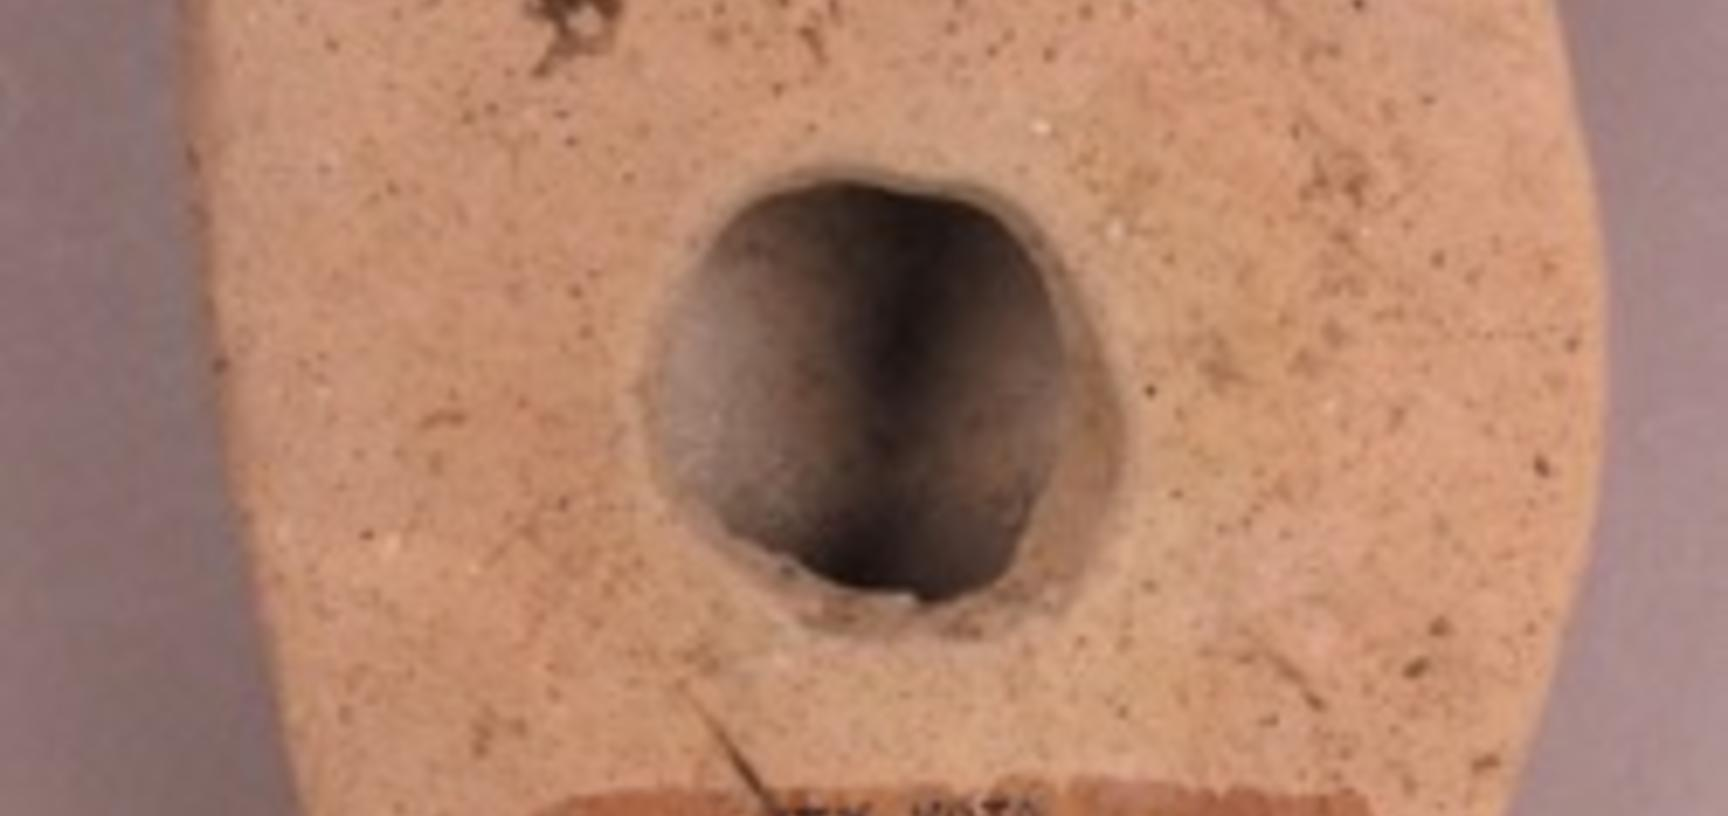 The flat back of a terracotta model, with a hole in the centre and hand-written text.